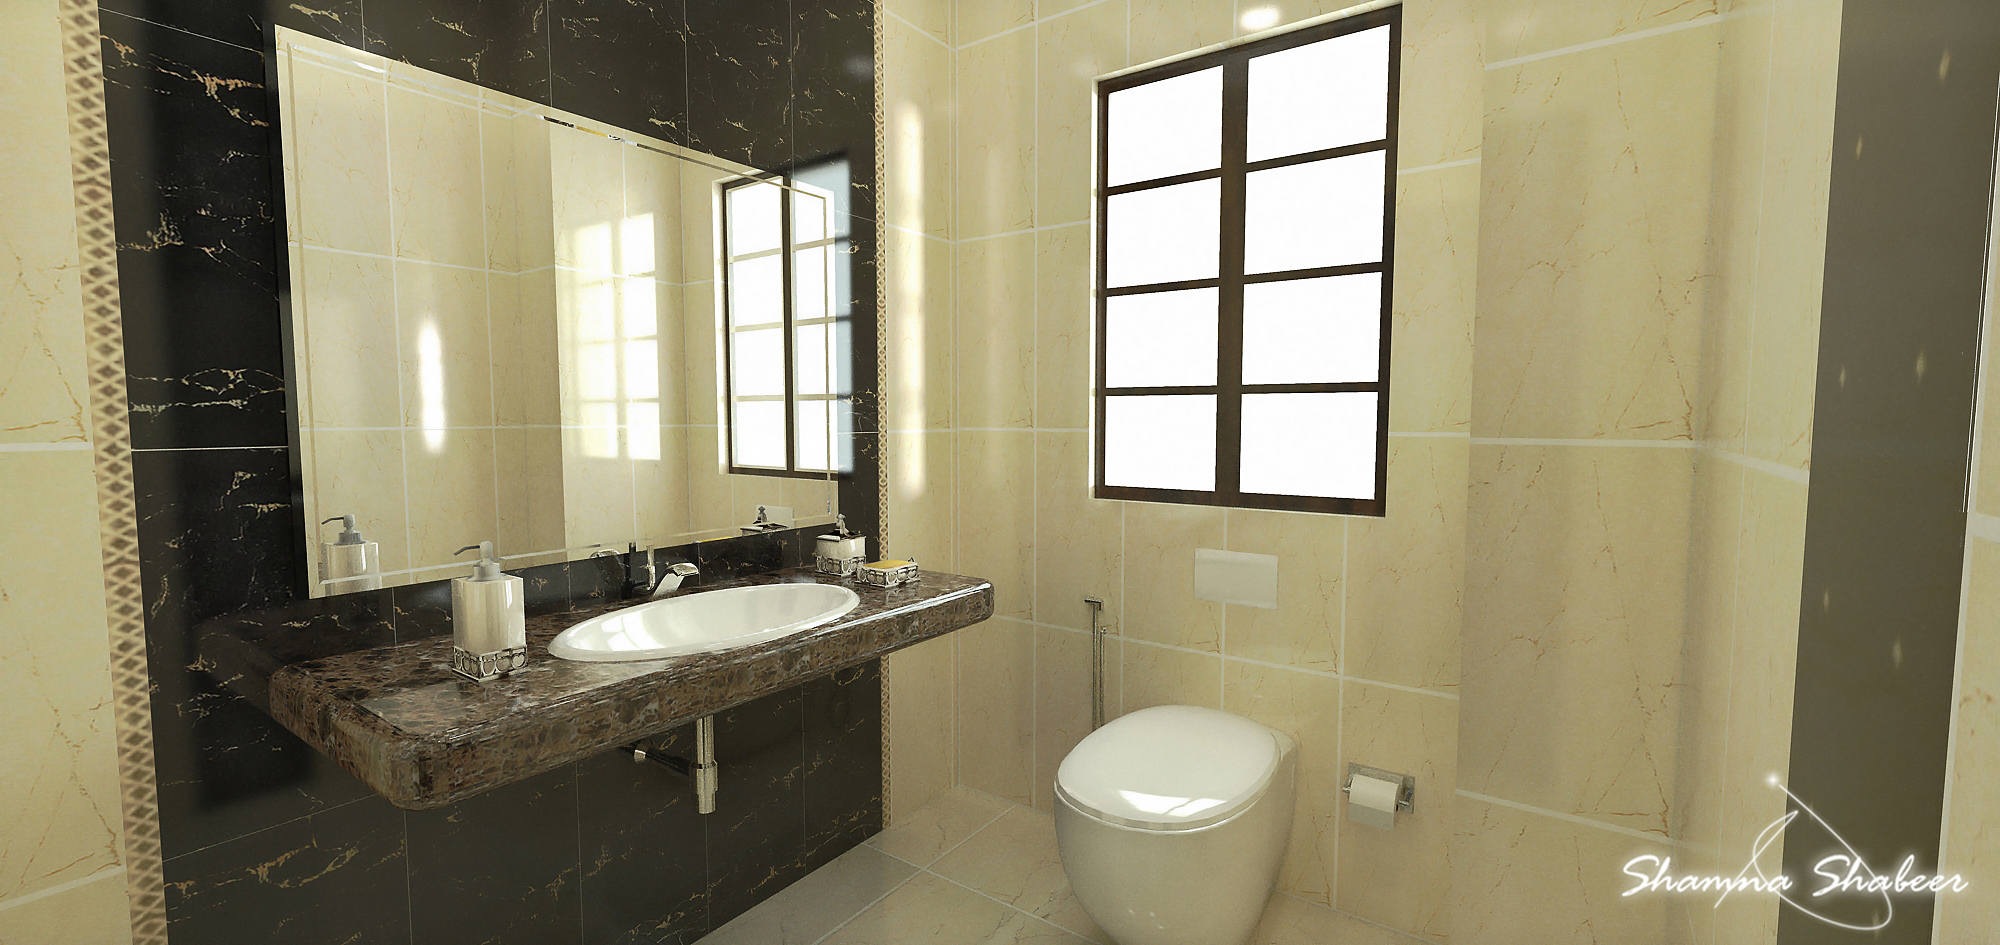 5 by 8 bathroom design weifeng furniture for Small bathroom design 5 x 8